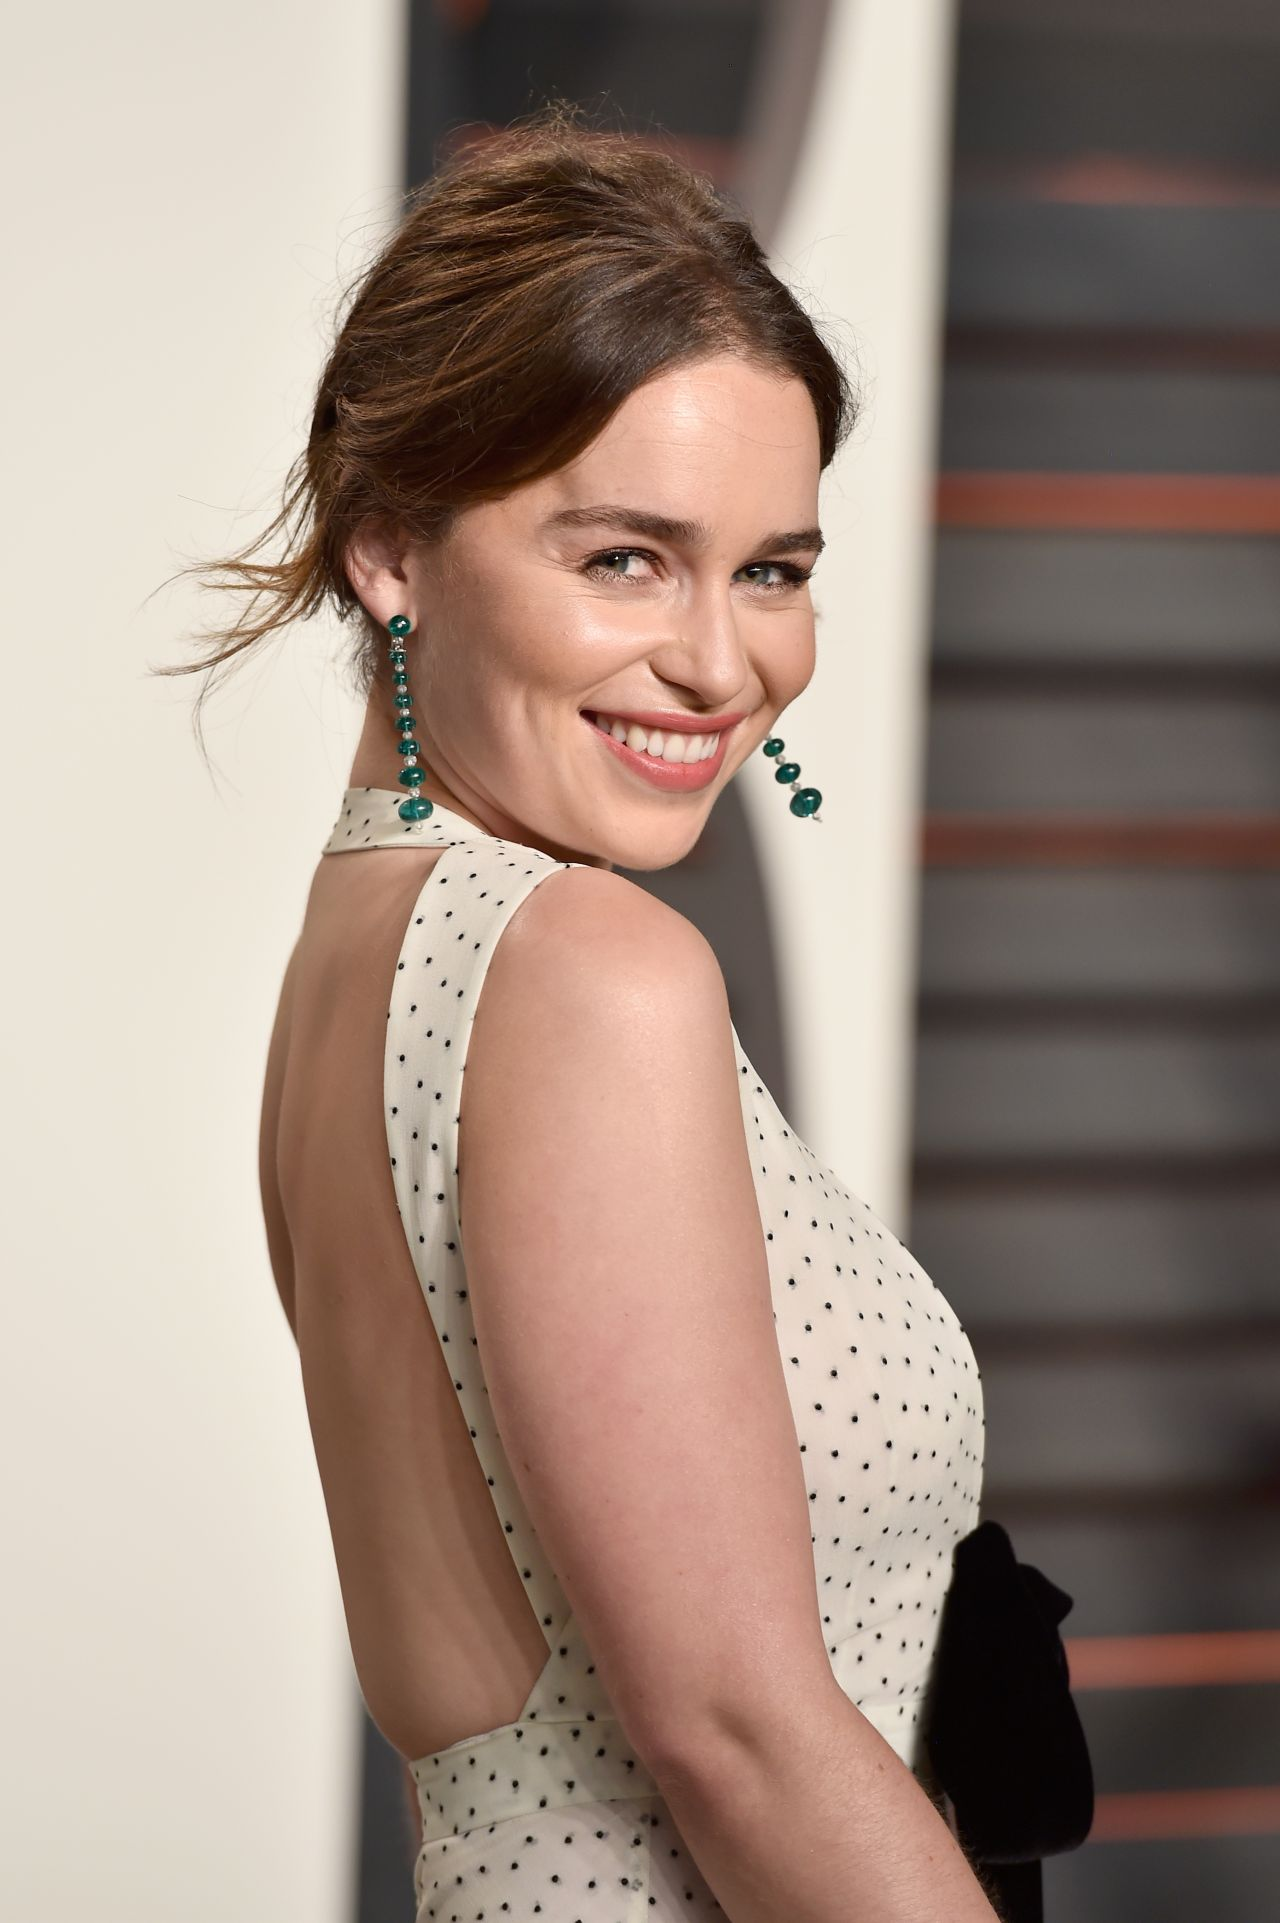 emilia-clarke-vanity-fair-oscar-2016-party-in-beverly-hills-ca-8